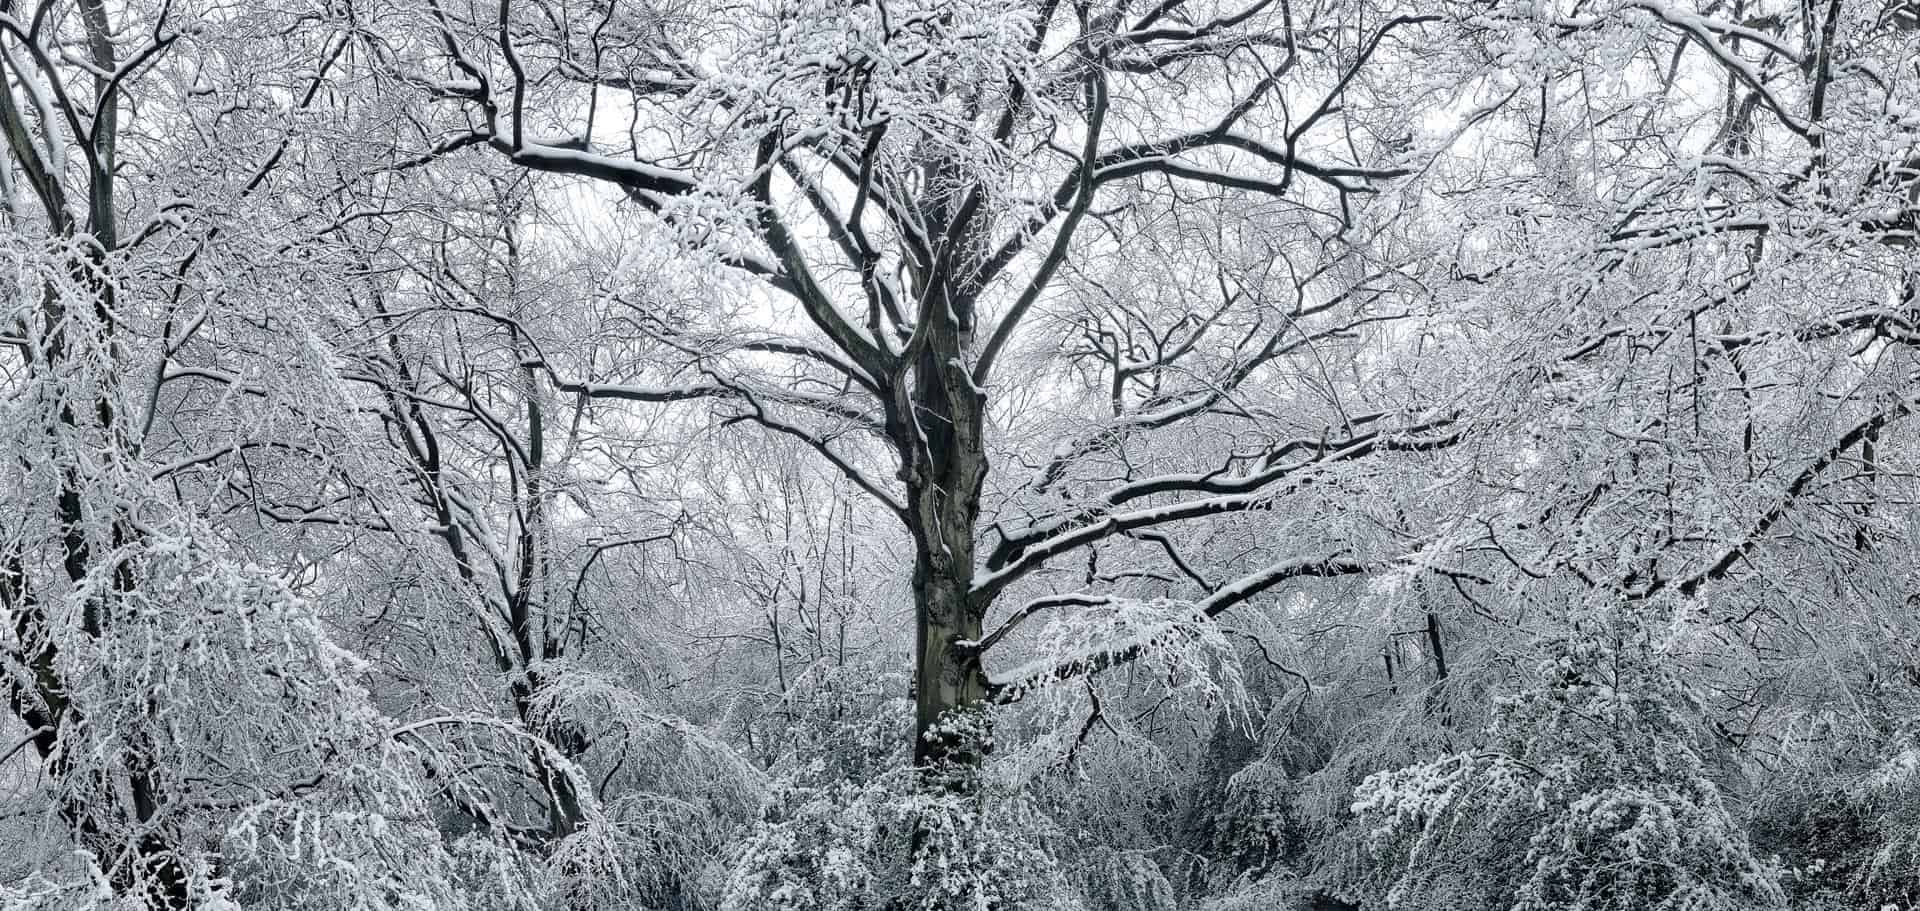 An example of a forest in winter, another example of having a 'moment of inspiration', which is critical for good photographic composition